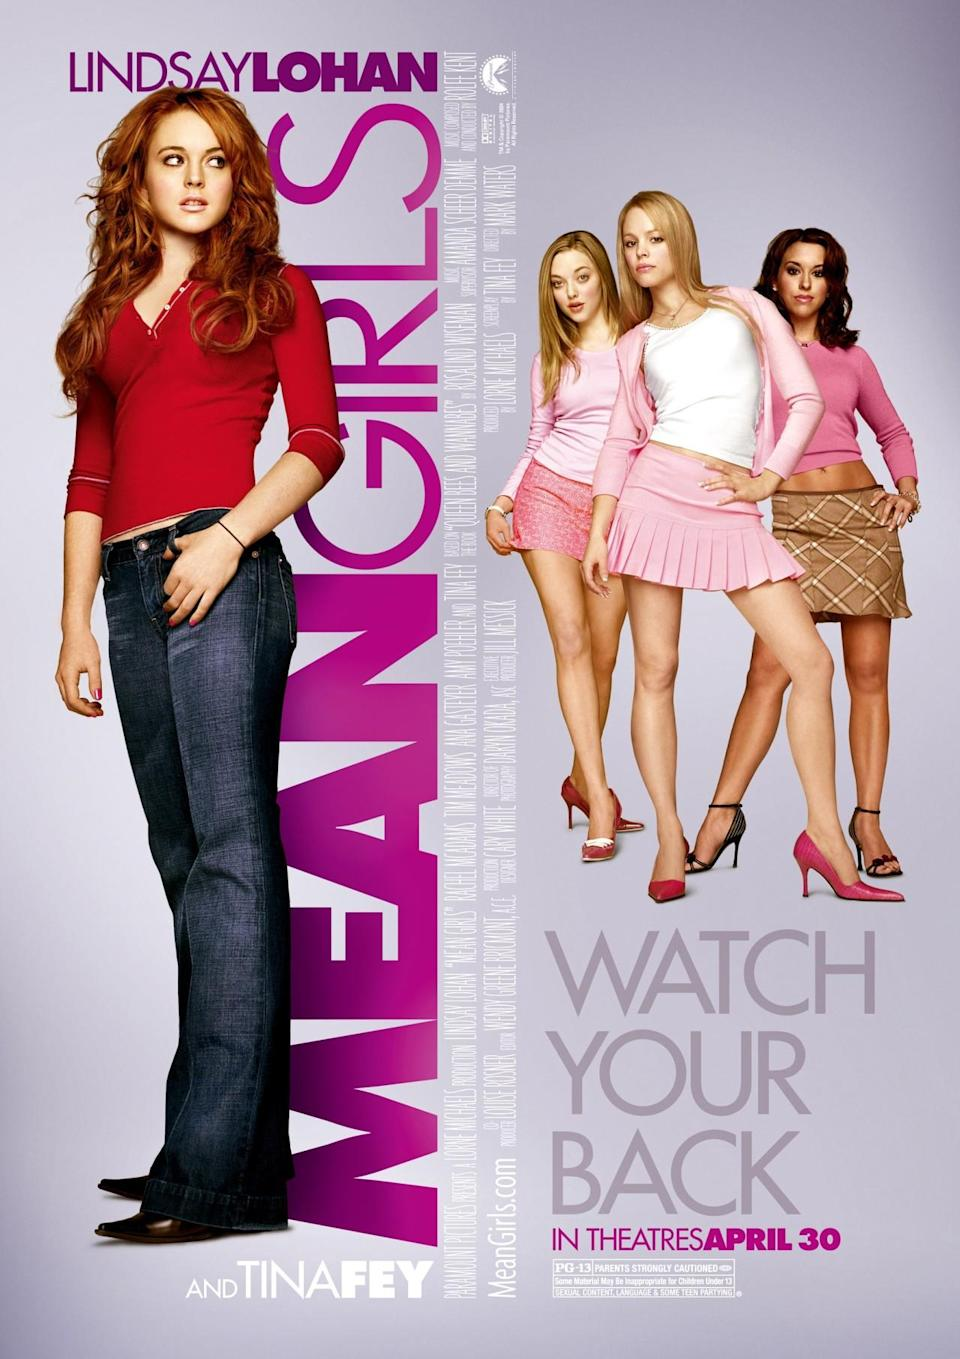 <p>OK, so the Plastics were mean, but remember how everyone wanted to be Regina George? Tina Fey's iconic film wasn't just a teen comedy — it explored female high school cliques and what it means to find out who your true friends are. When the Plastics performed their annual sexy Santa dance onstage in front of their entire high school, you wanted to dislike them and be them at the same time. <i>(Source: Paramount Pictures)</i></p>